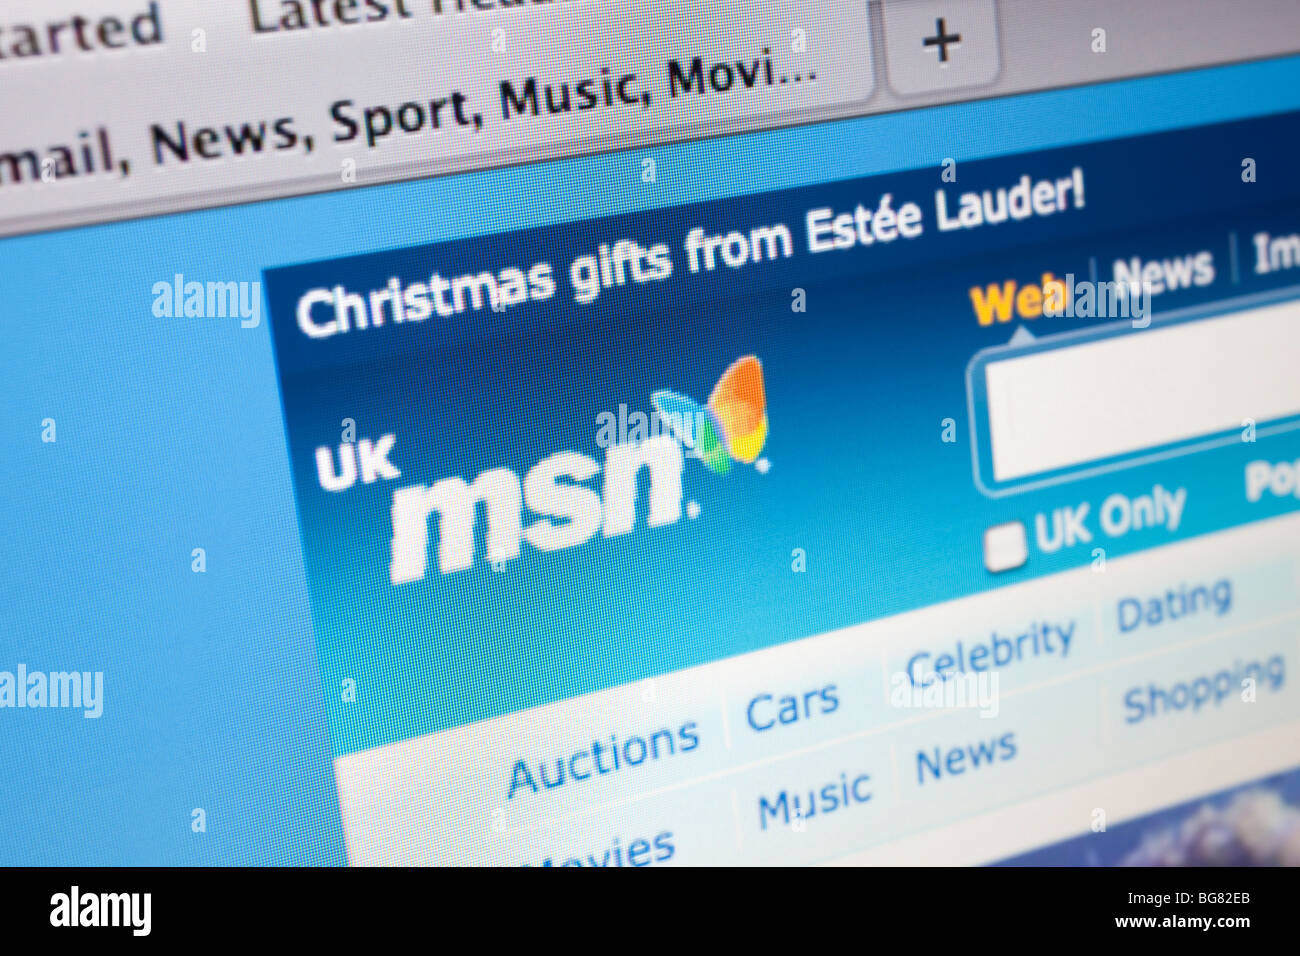 Msn News Website Stock Photos & Msn News Website Stock